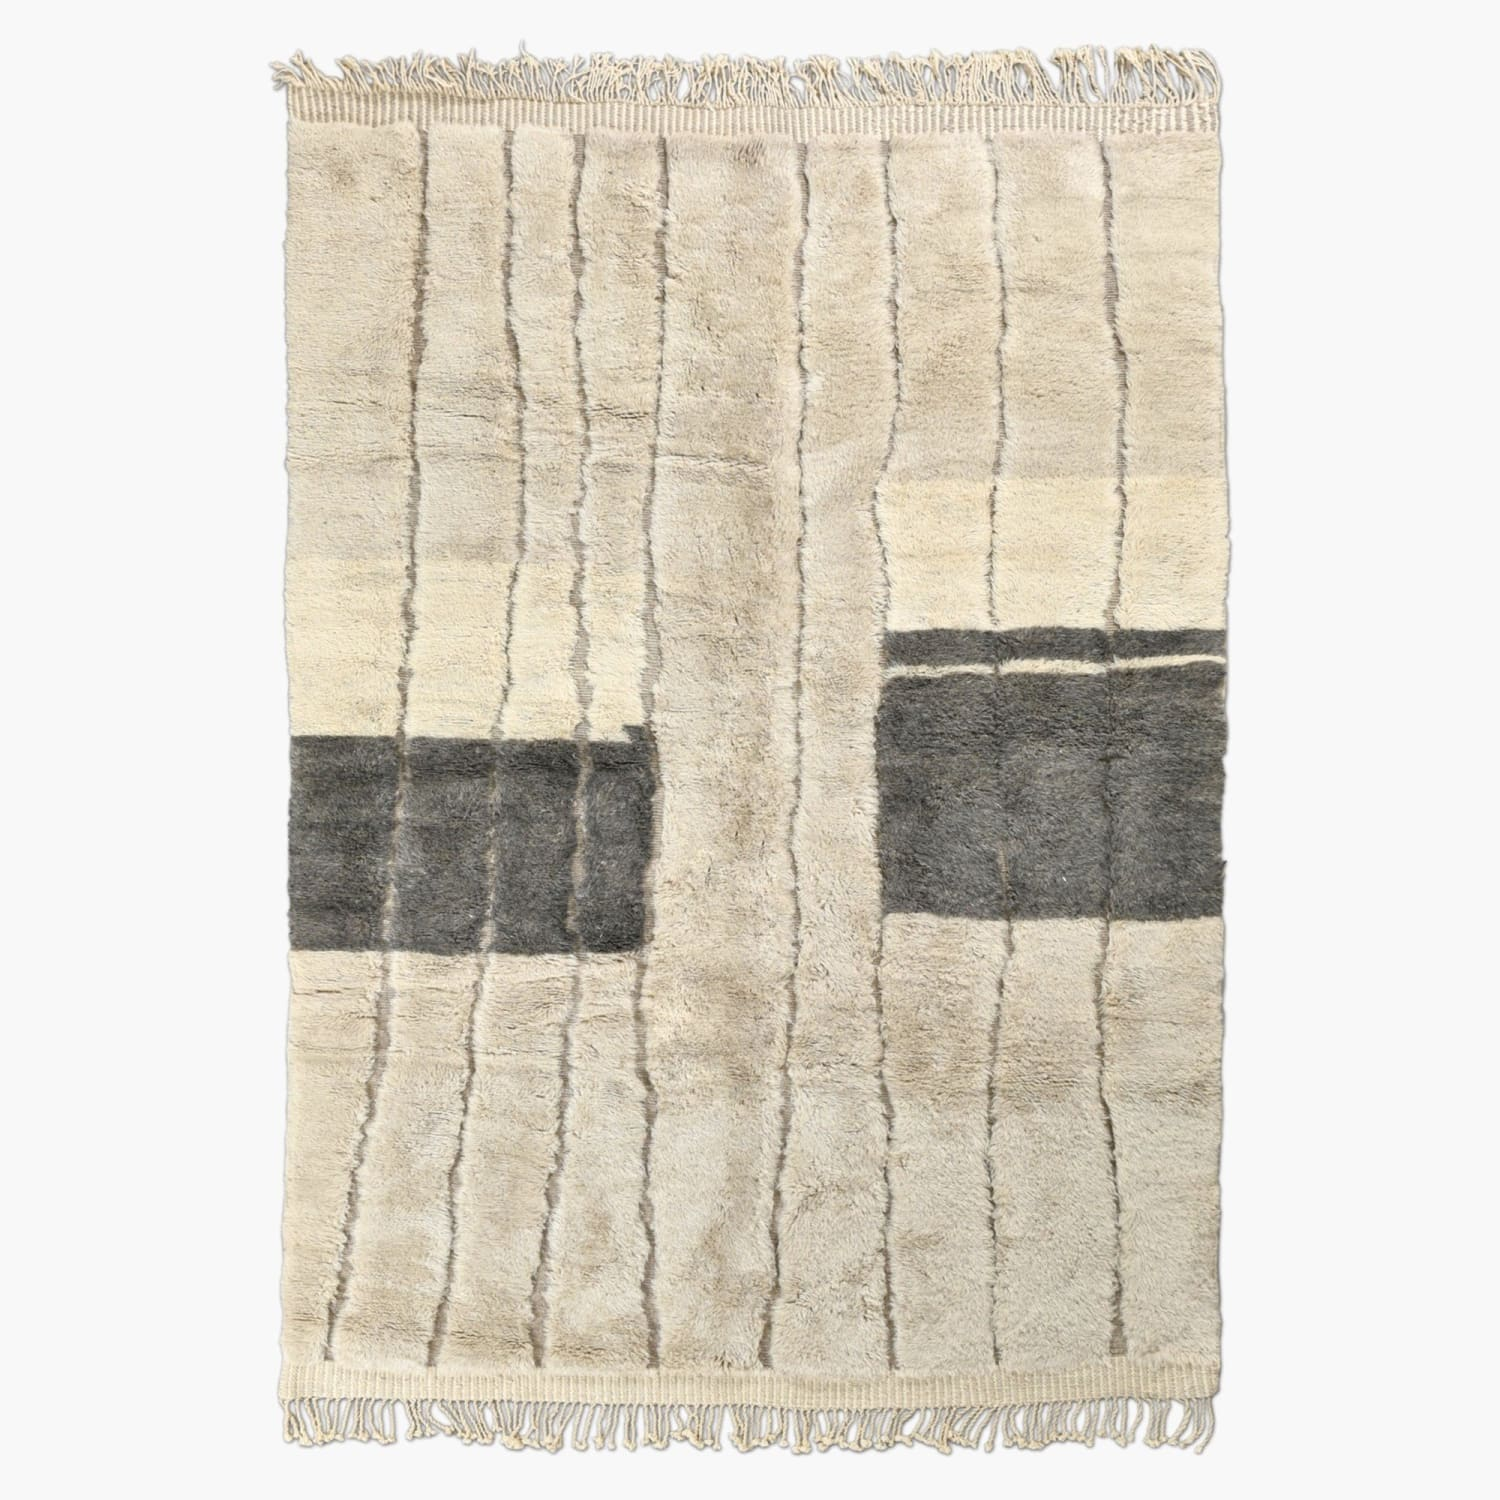 "Light and Shadow - Luxury Mrirt Rug ""Exclusive"" - BENISOUK"